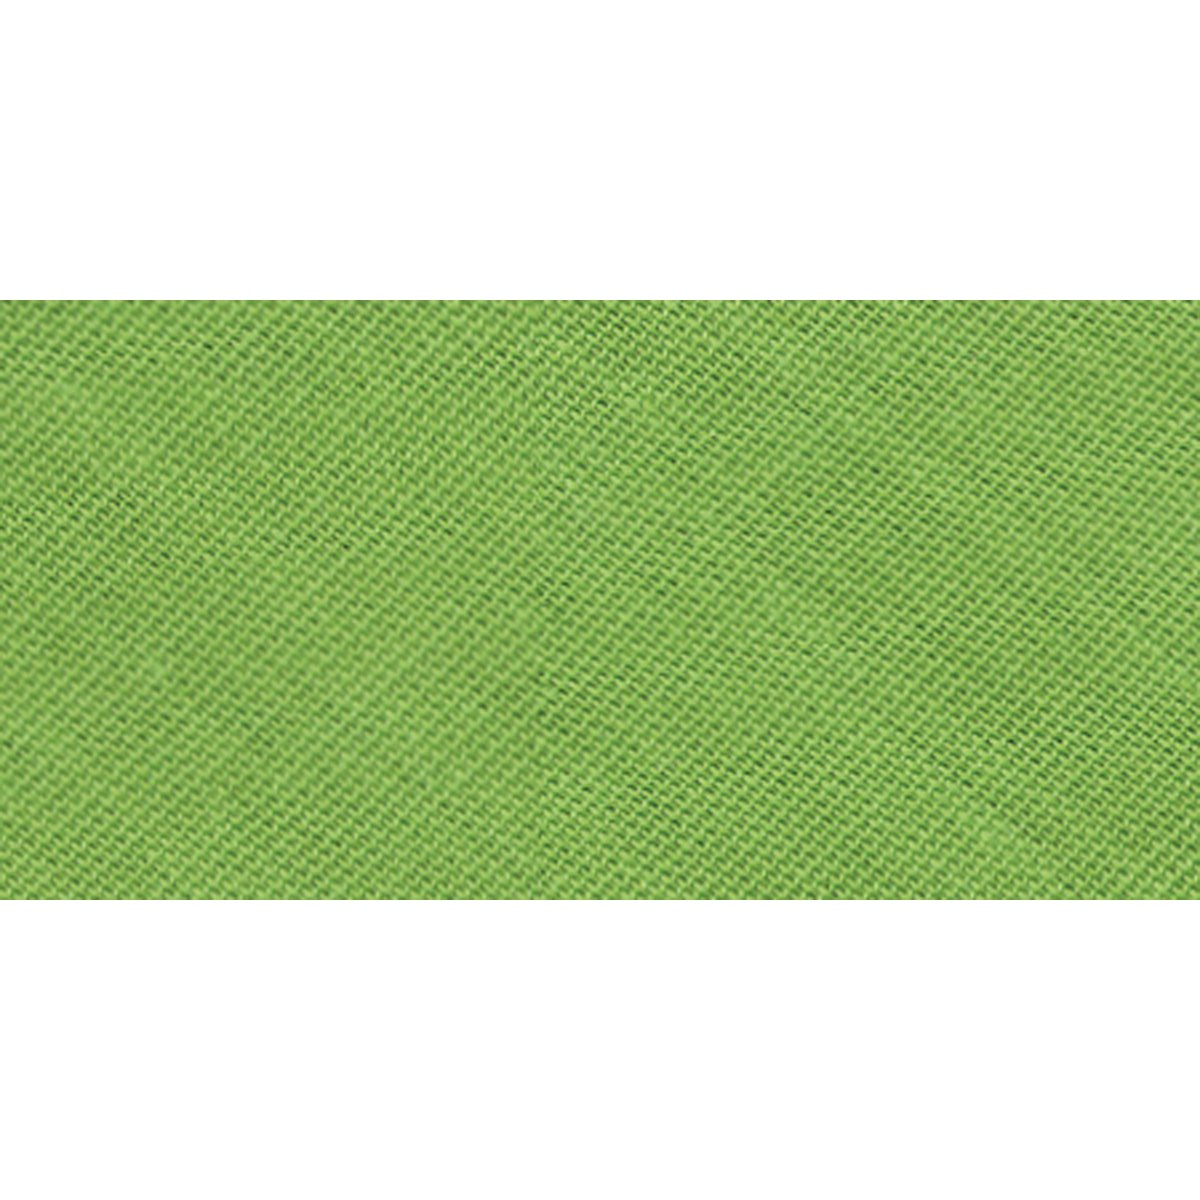 Canary 3-Yard Wrights 117-706-086 Double Fold Quilt Binding Bias Tape